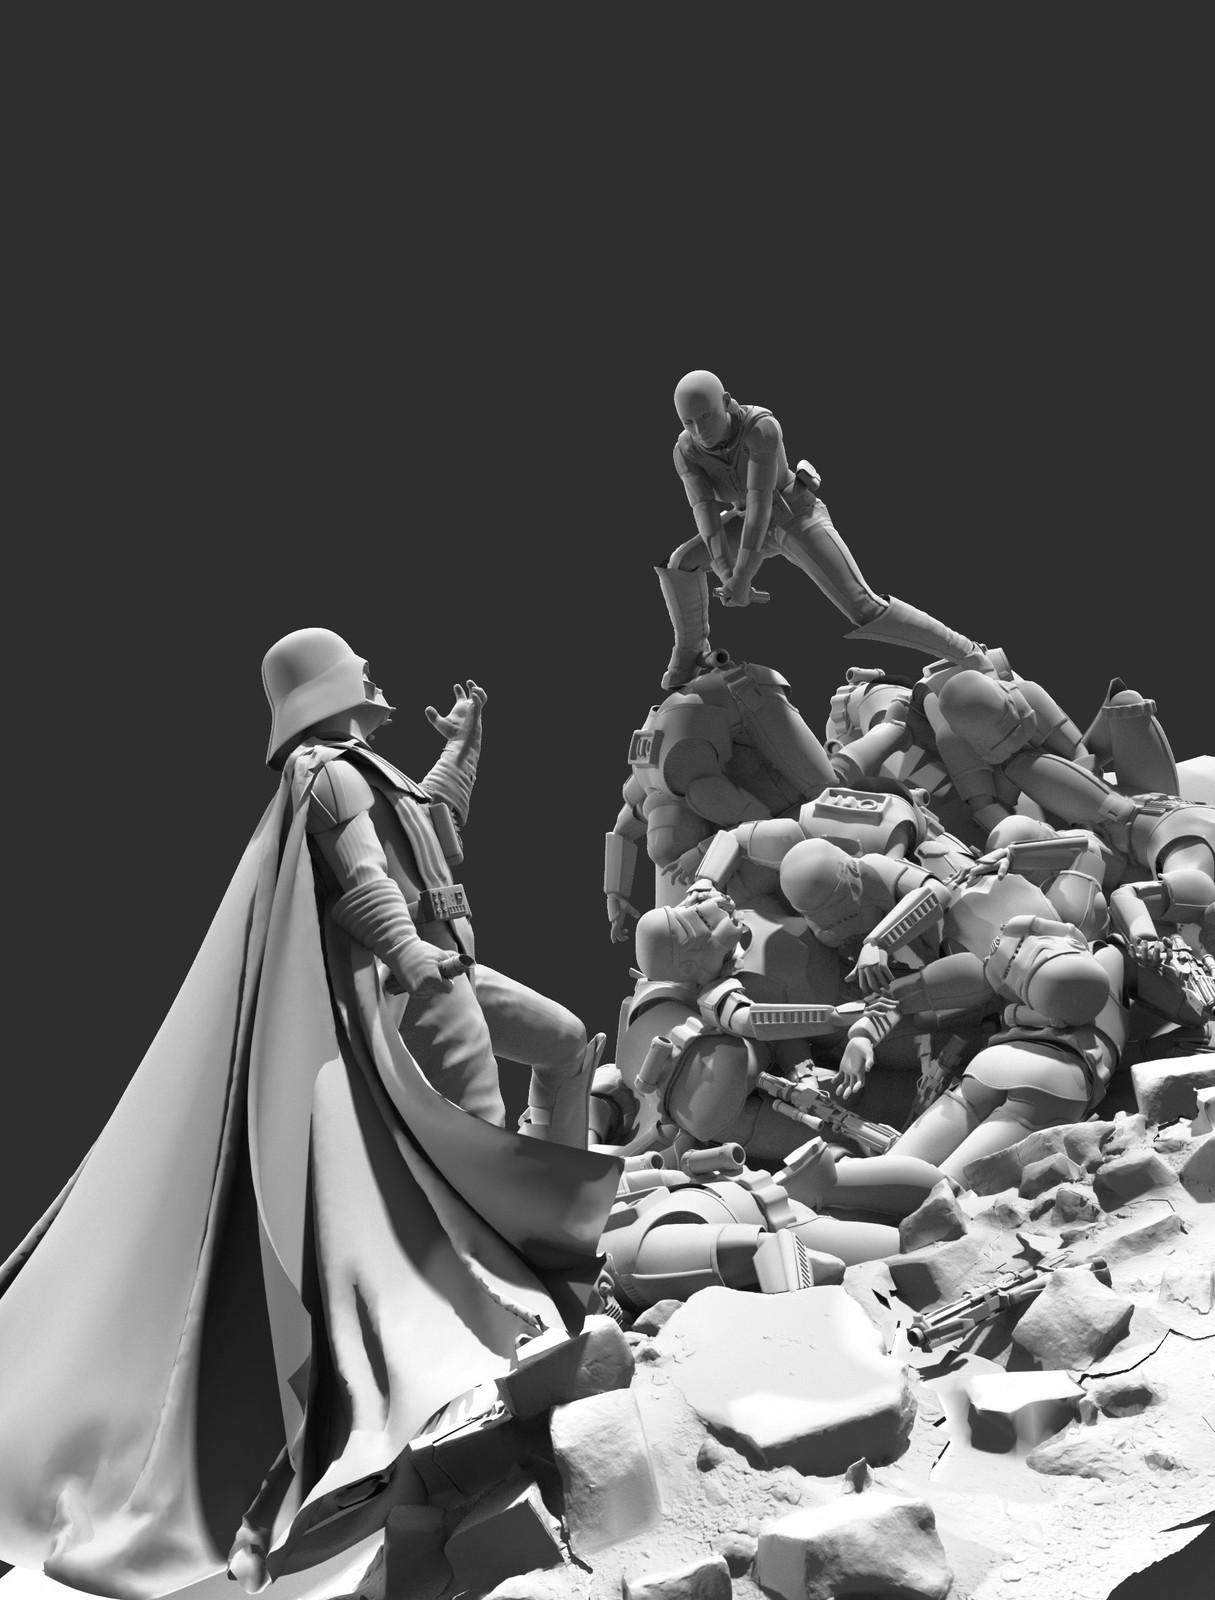 Clay Render (background architecture and troopers were rendered separately)